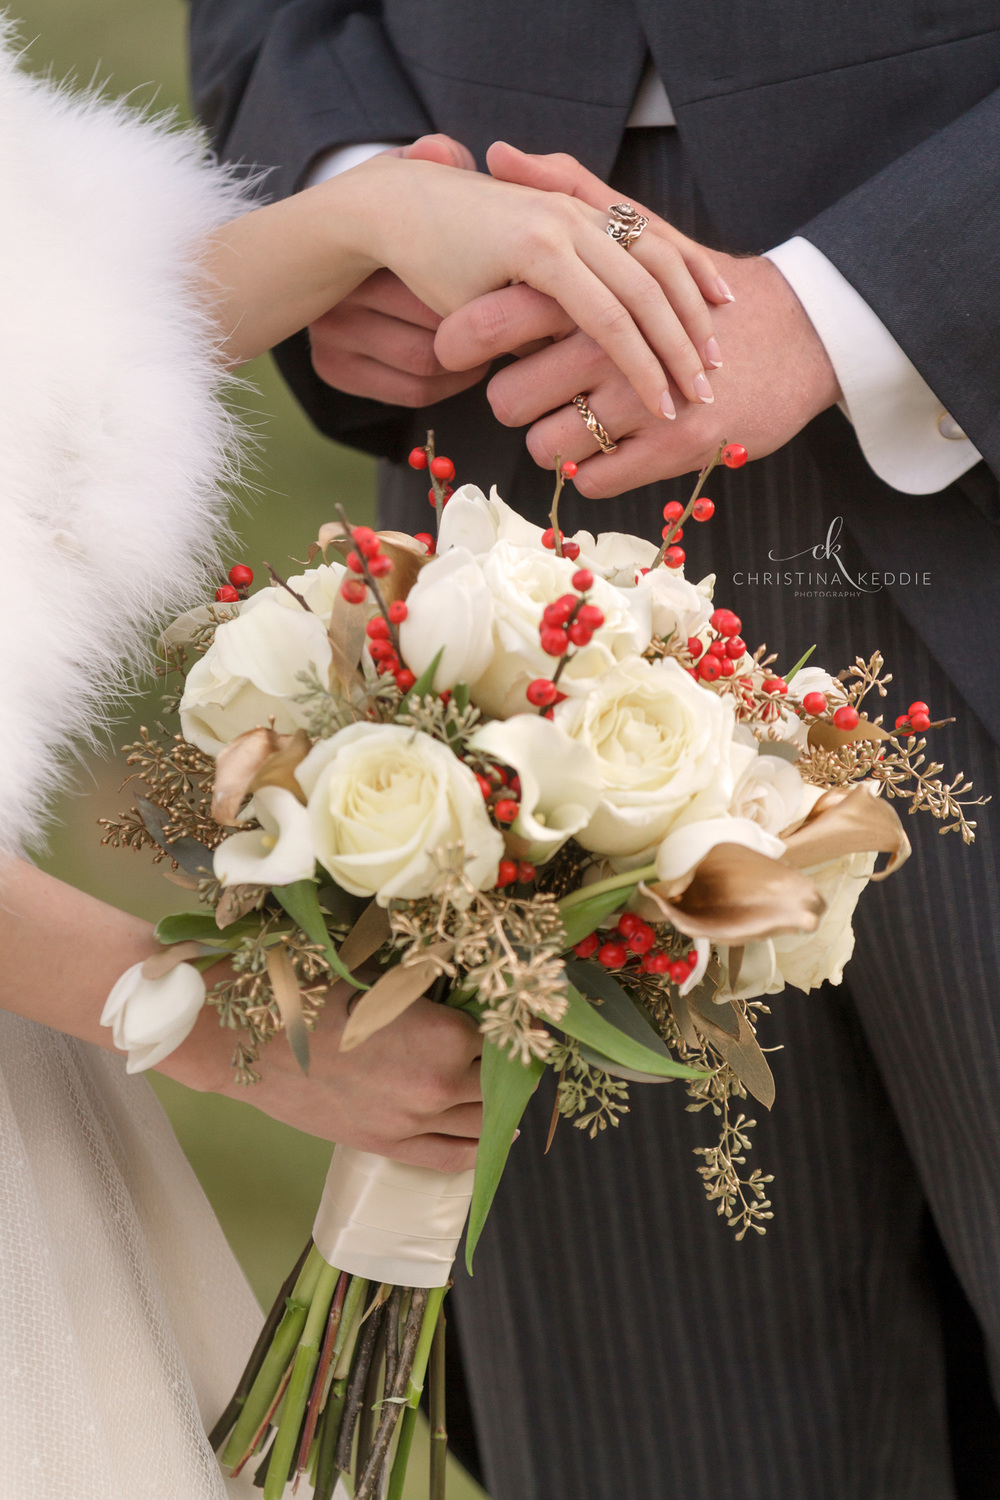 Winter wedding flowers and rings | Christina Keddie Photography | Princeton NJ wedding photographer